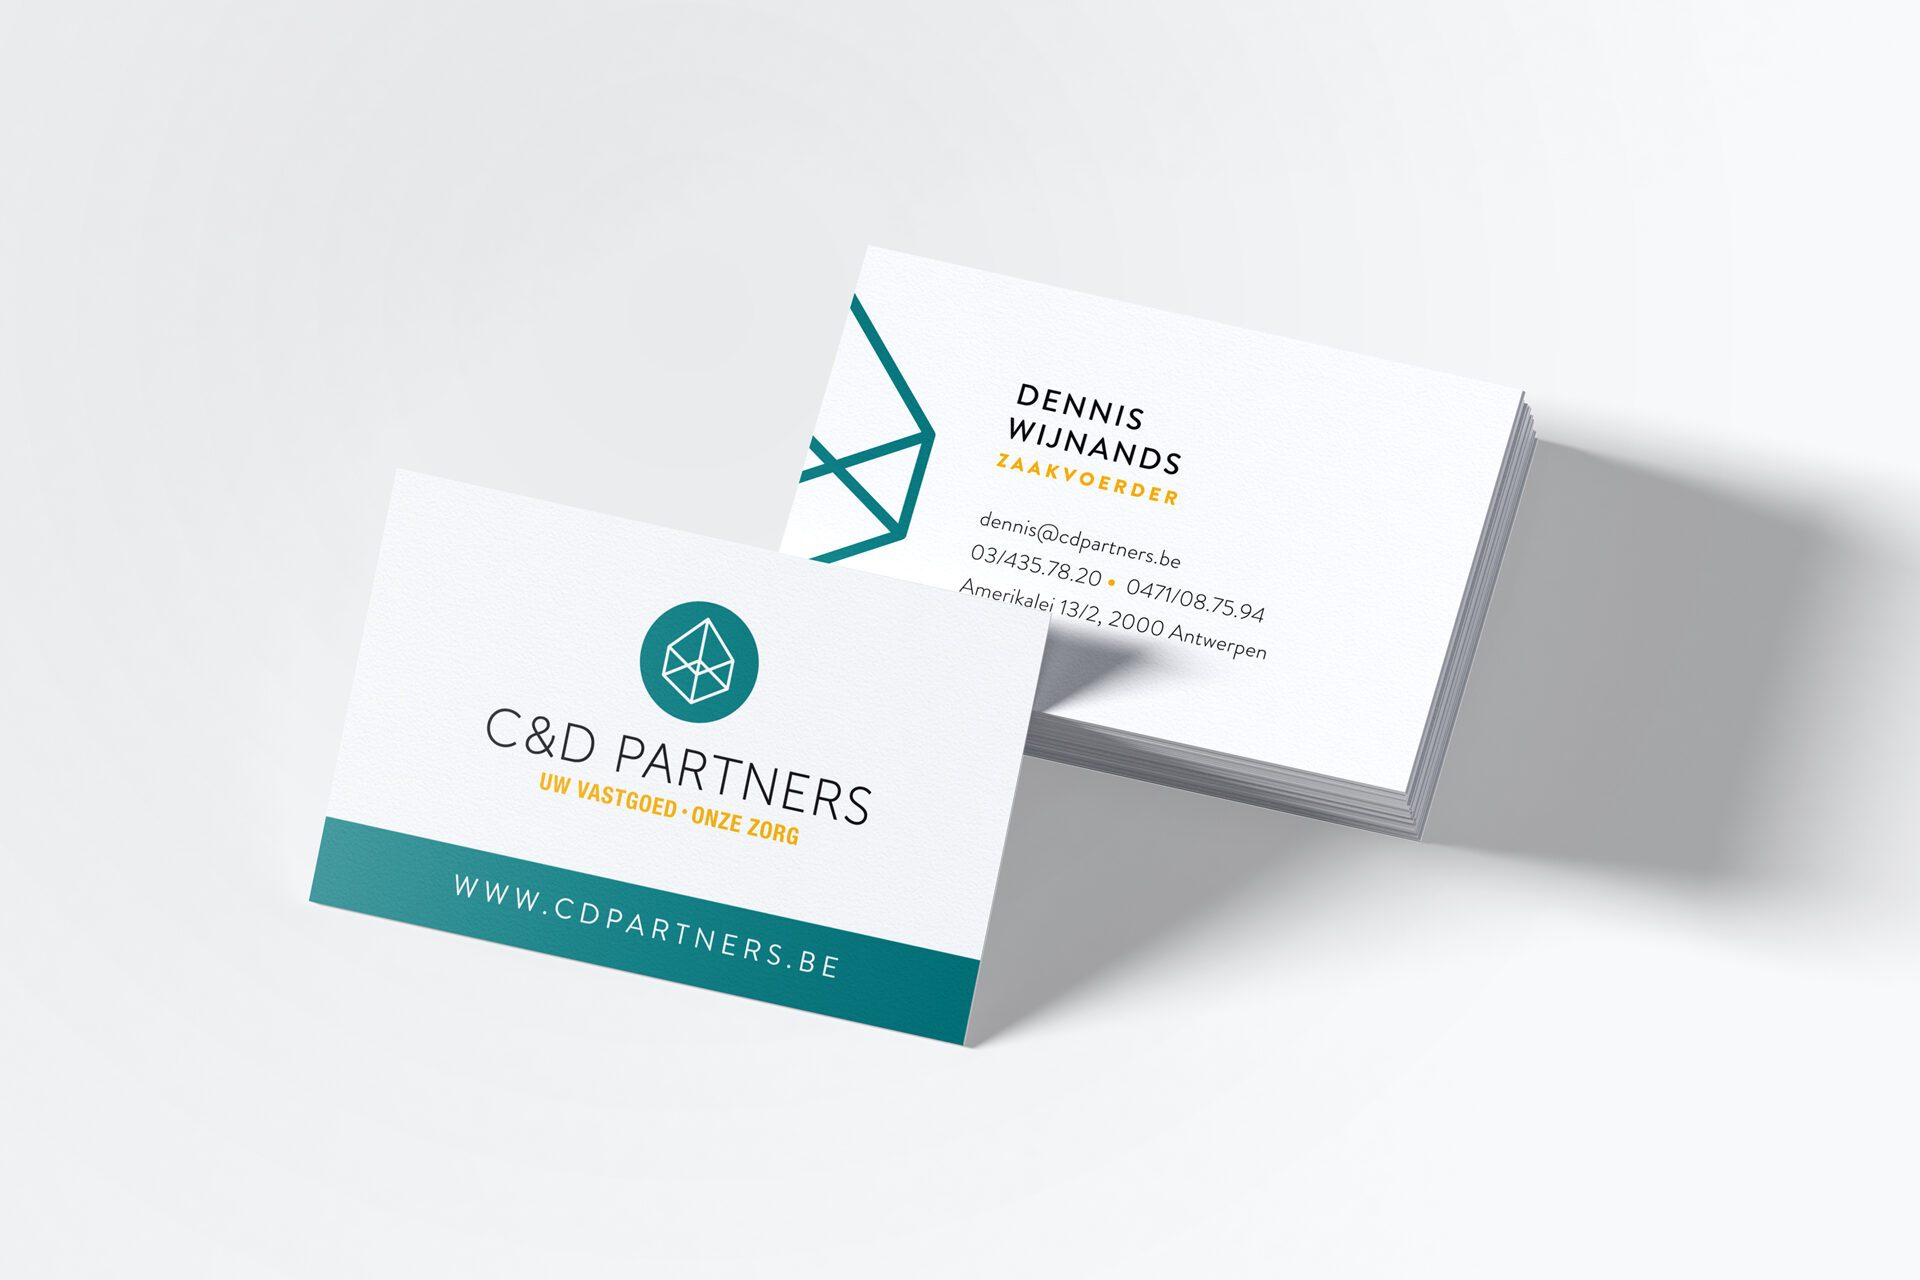 Picture C&D partners Brand Identity